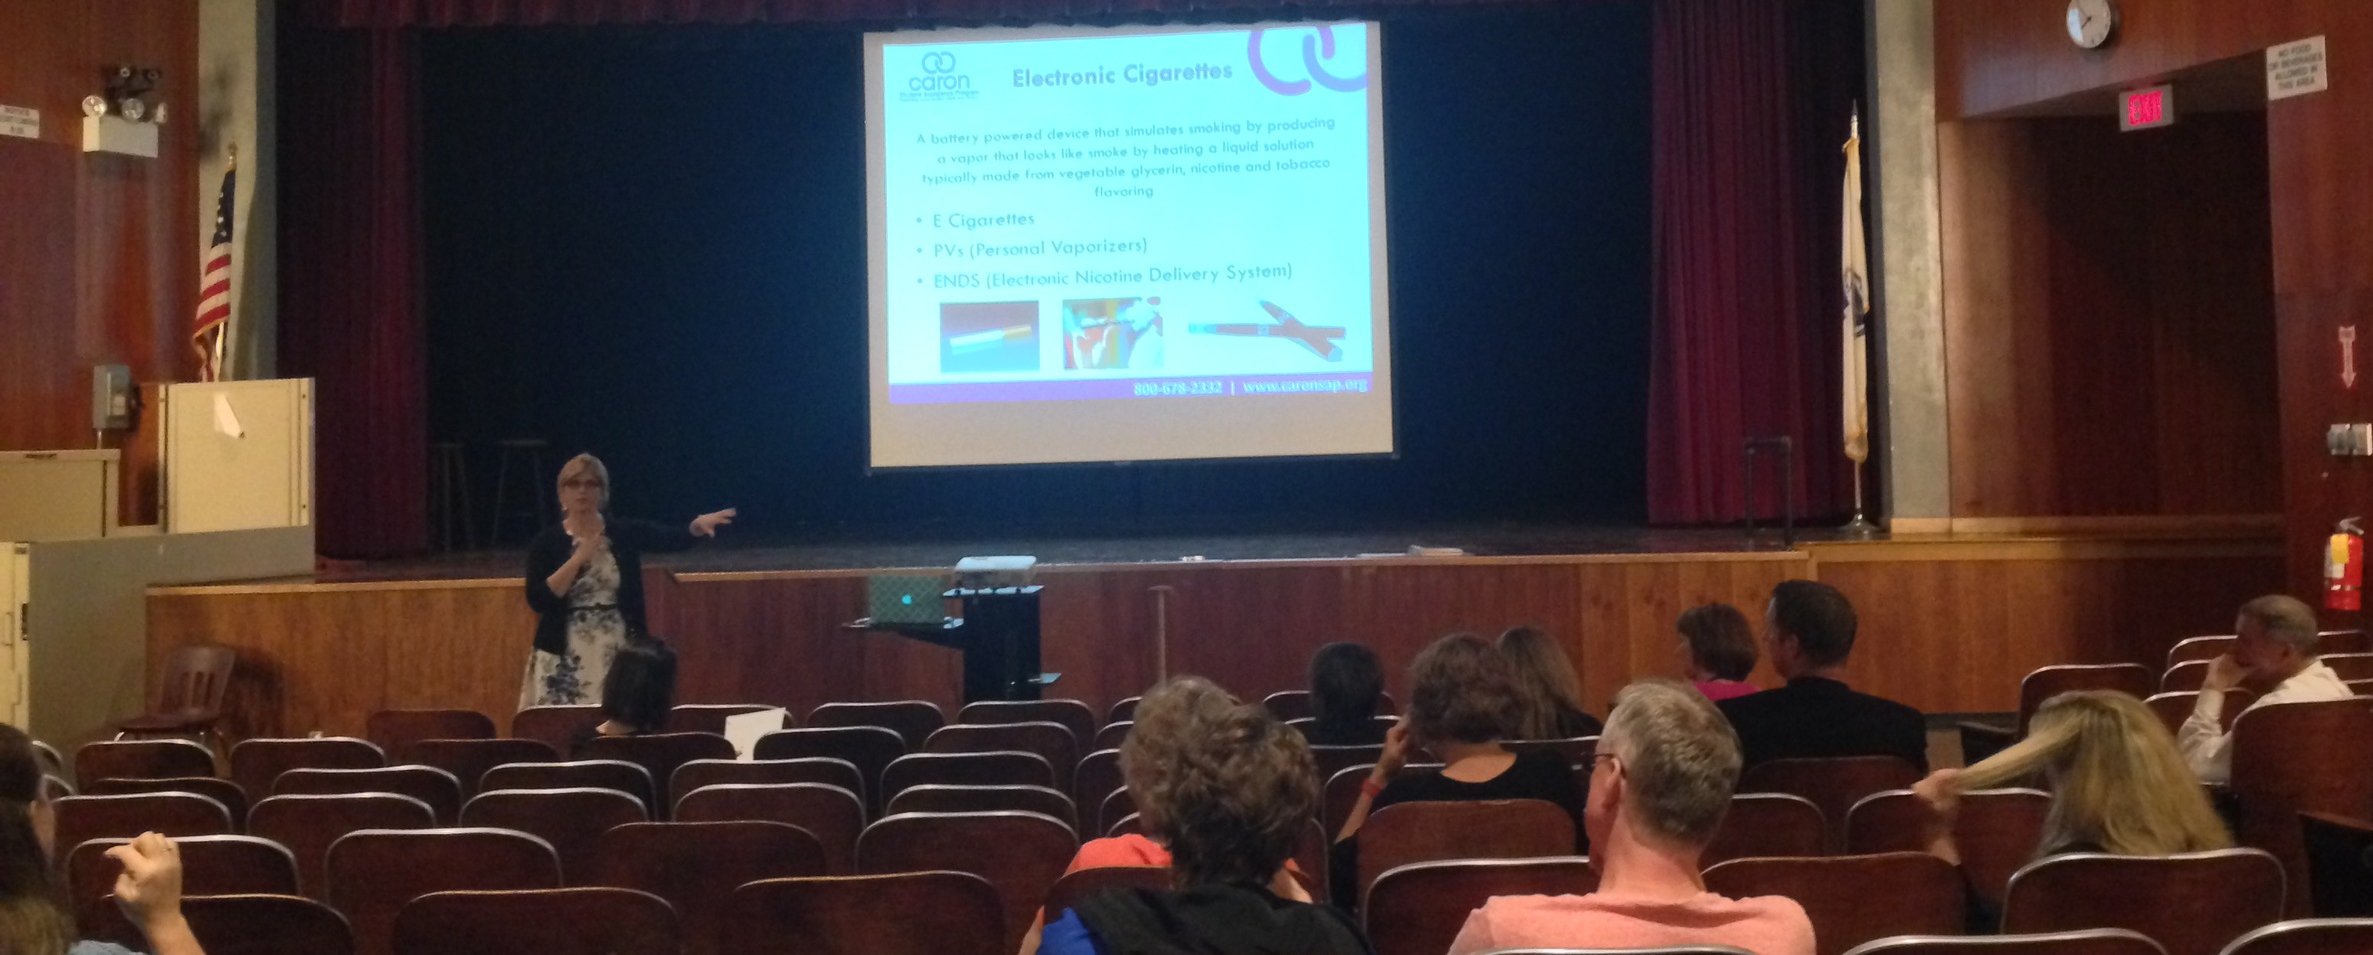 Prevention Resources and Education for Parents    (PREP)  by Caron Student Assistance Program at the Millis High School, 5/2016